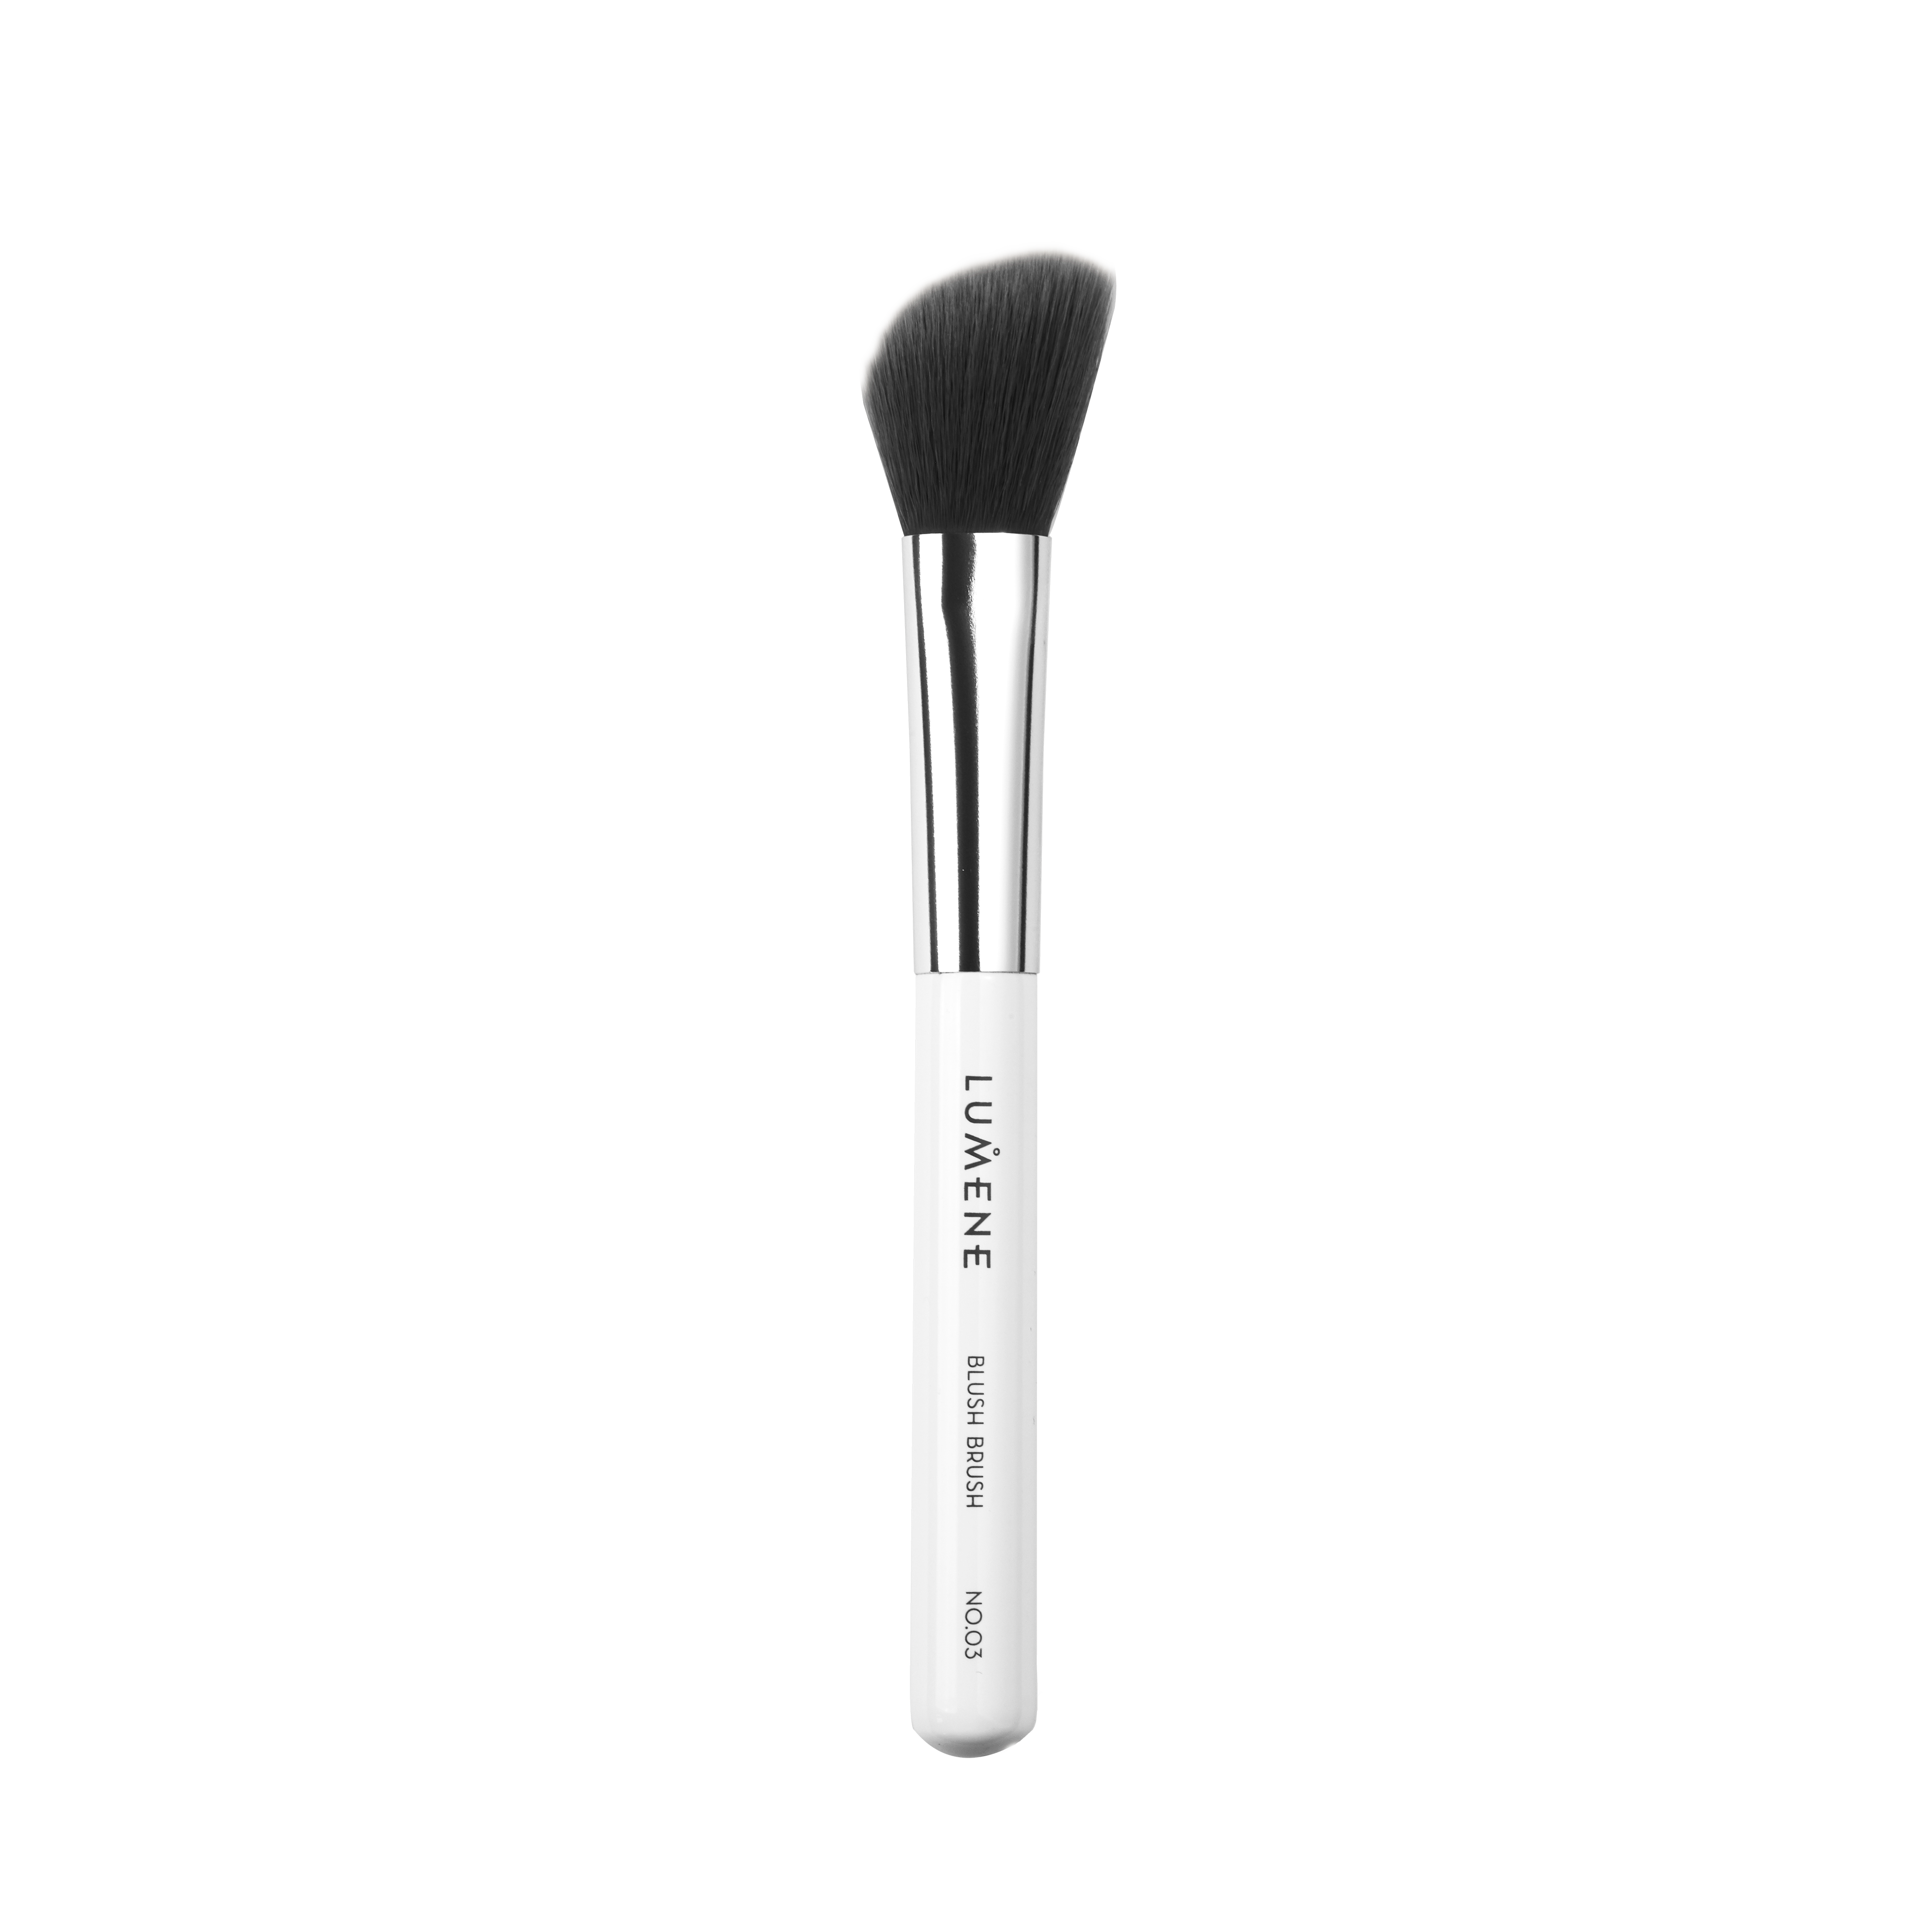 Nordic Chic Blush Brush No.03